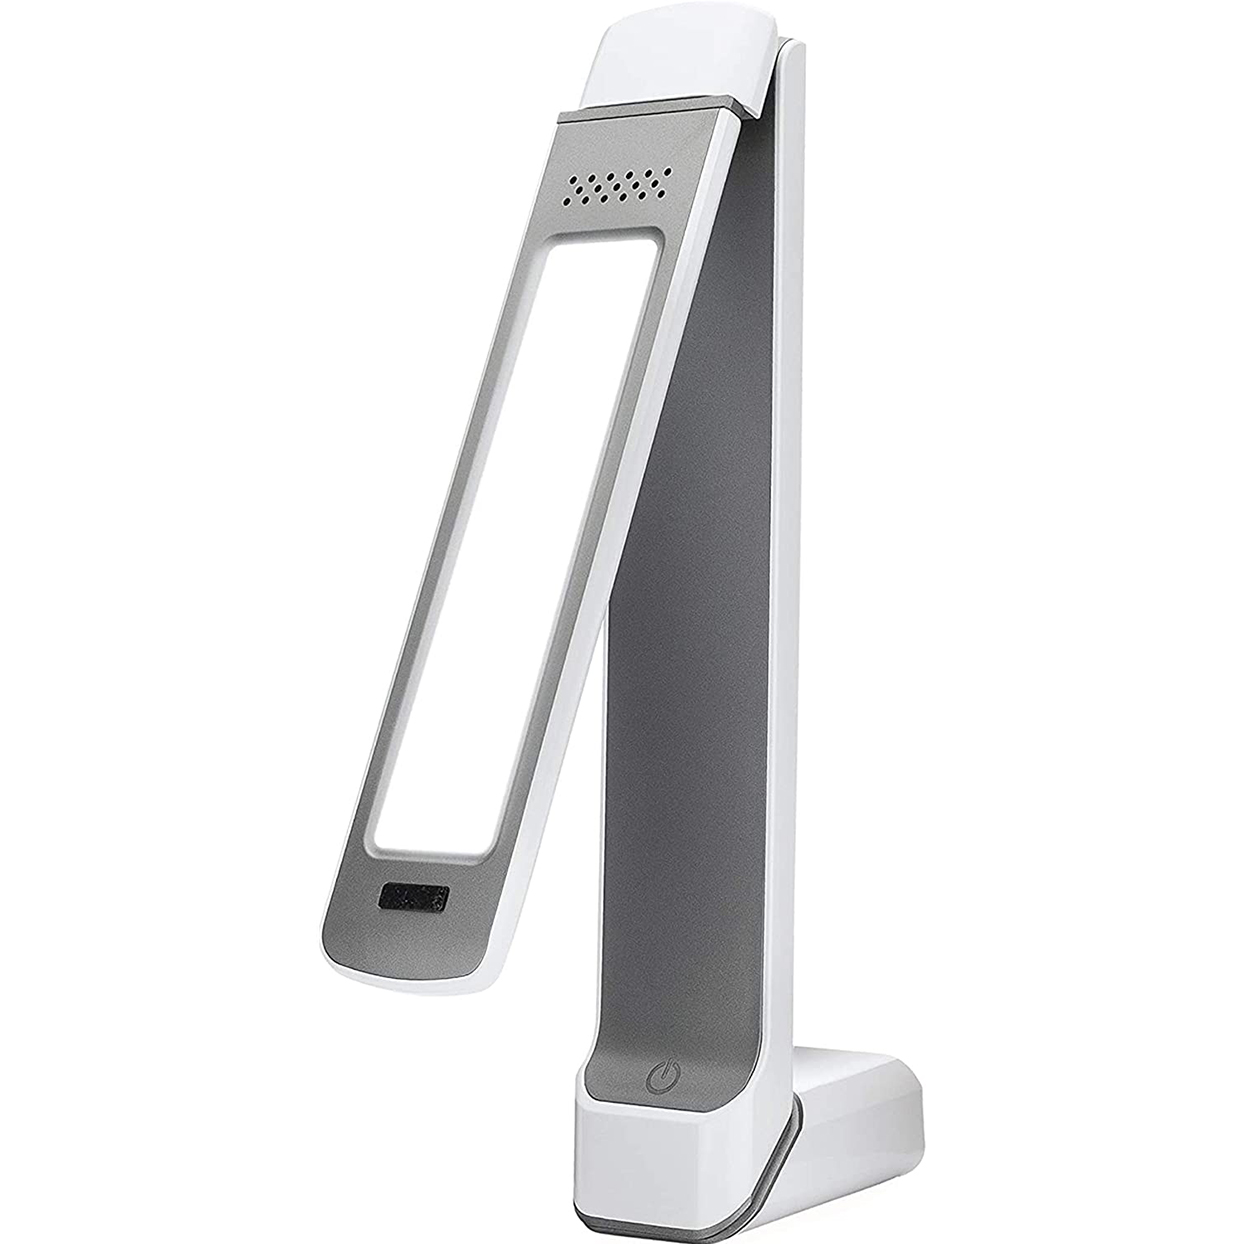 Circadian Optics Lumos 2.0 Light Therapy Lamp